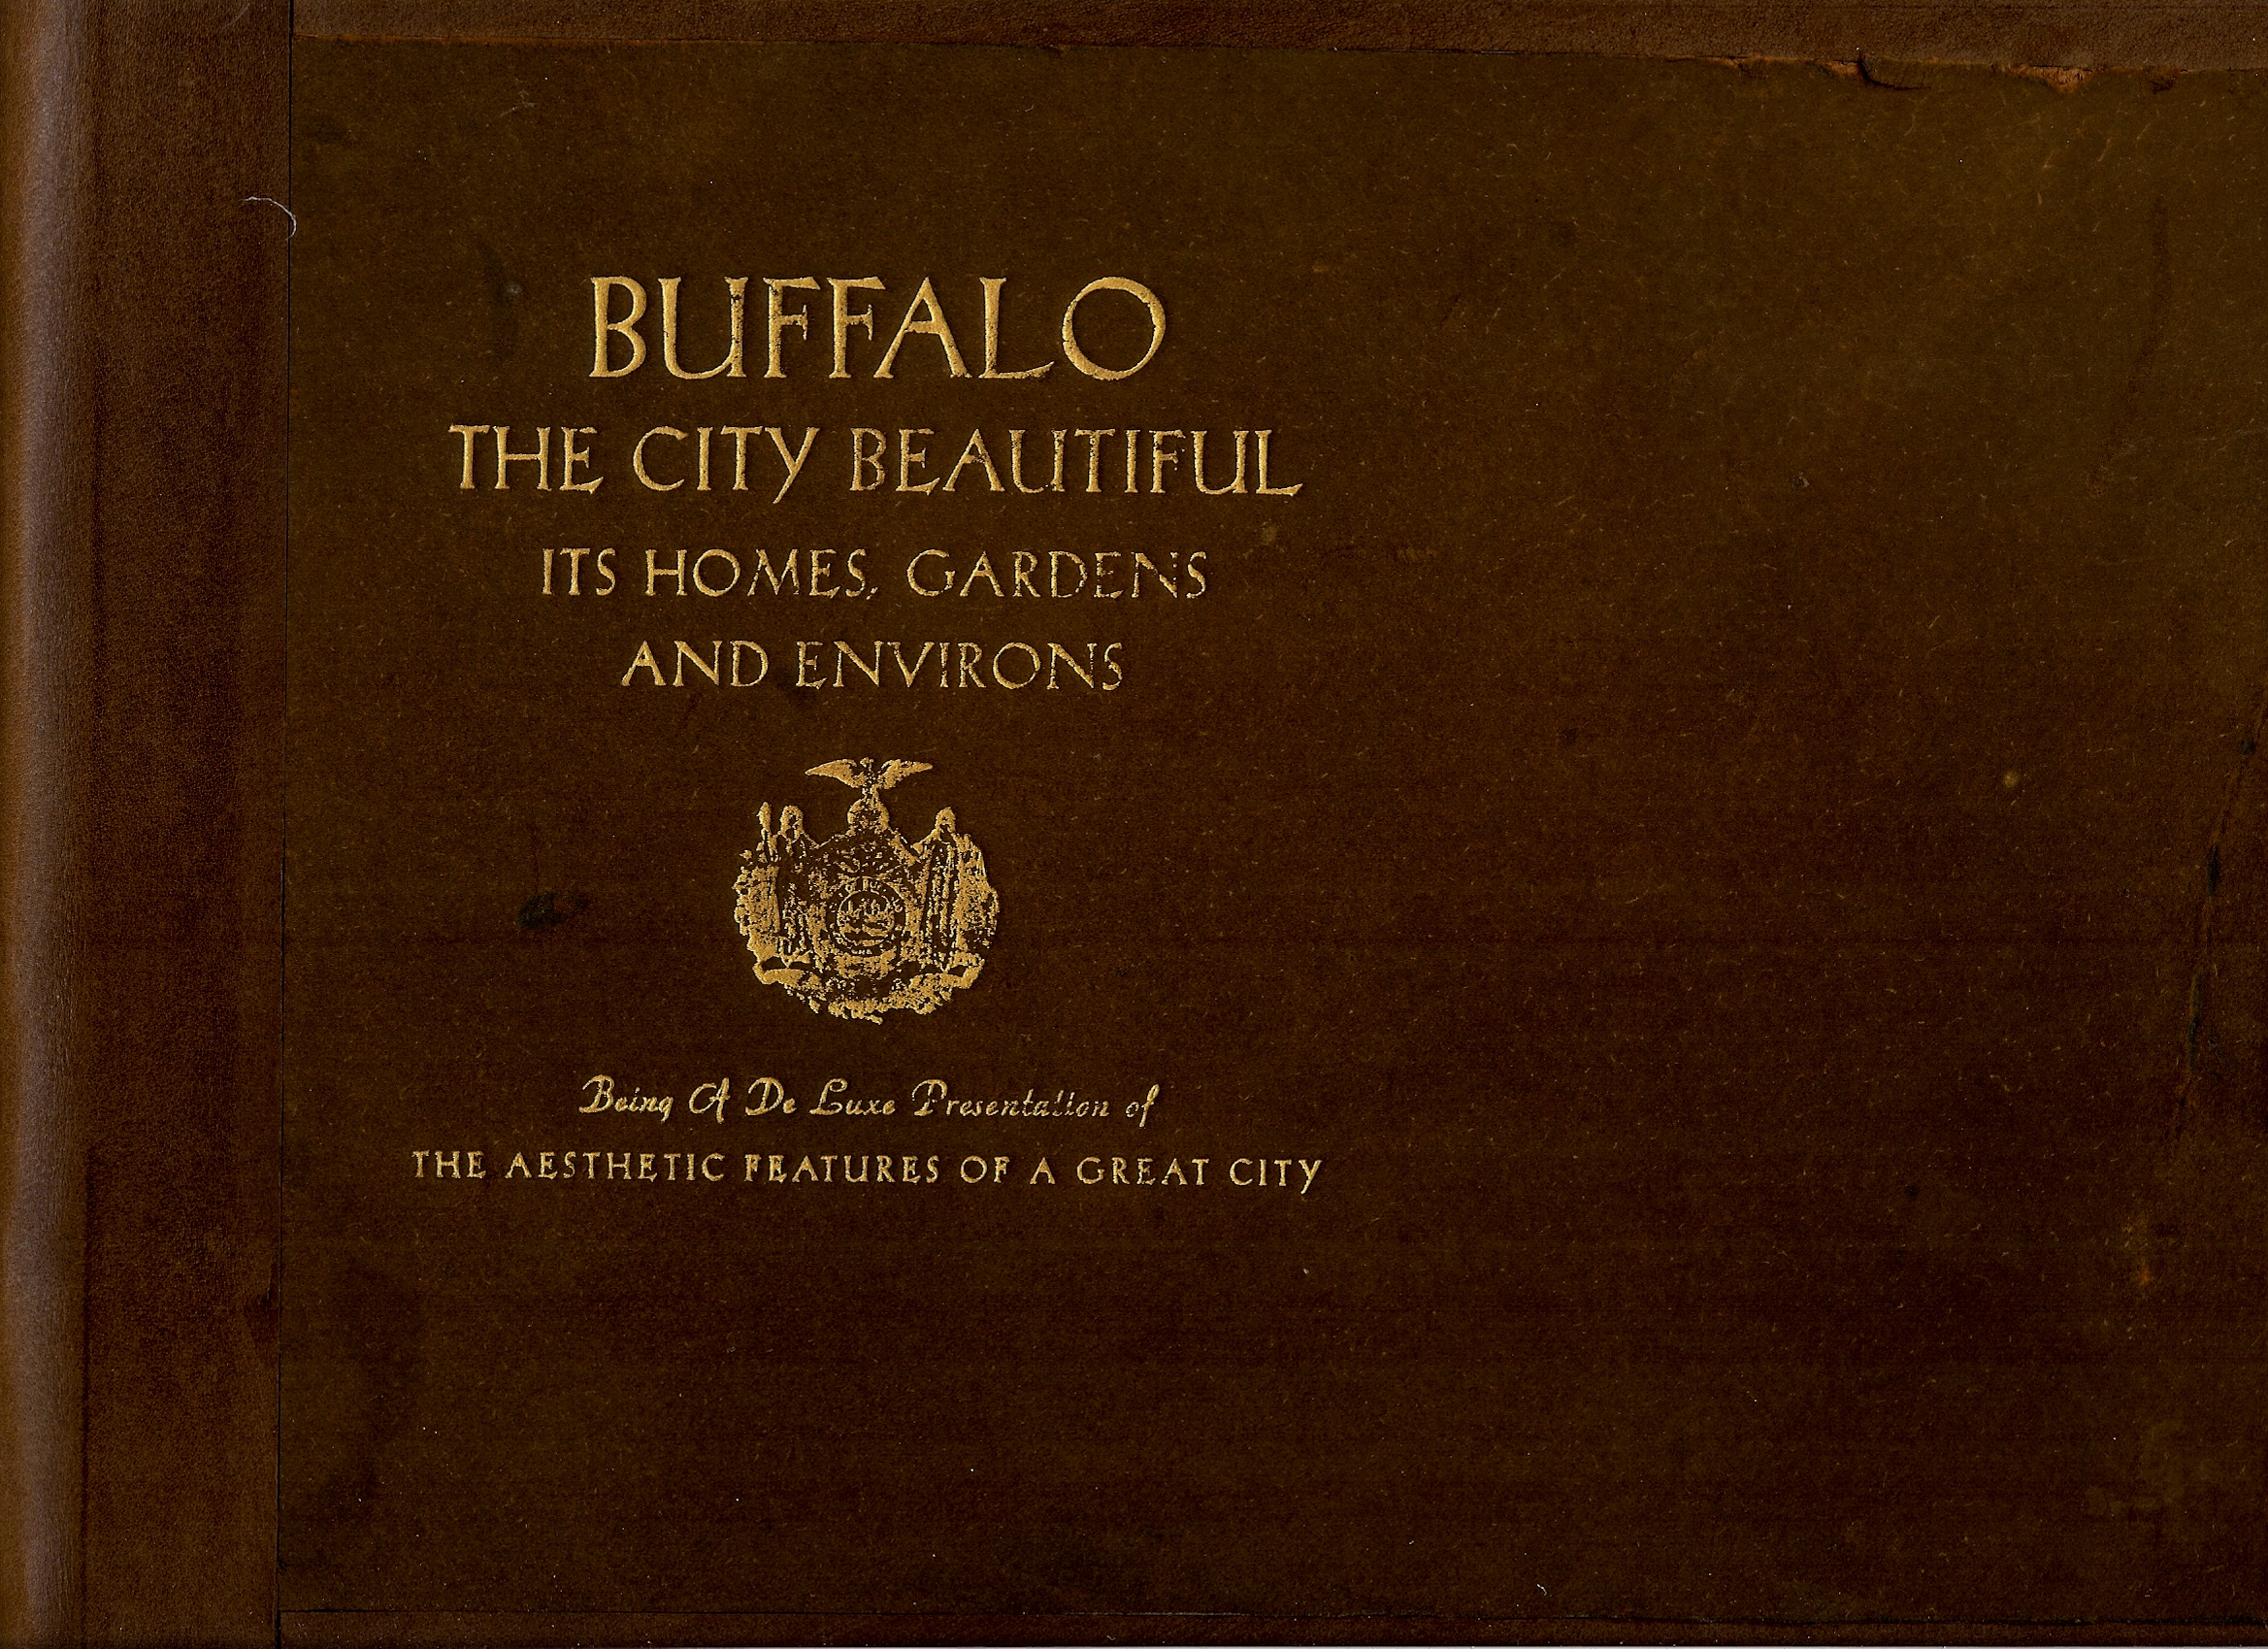 Image for BUFFALO , THE CITY BEAUTIFUL , ITS HOMES , GARDENS AND ENVIRONS , BEING A DELUXE PRESENTATION OF THE AESTHETIC FEATURES OF A GREAT CITY